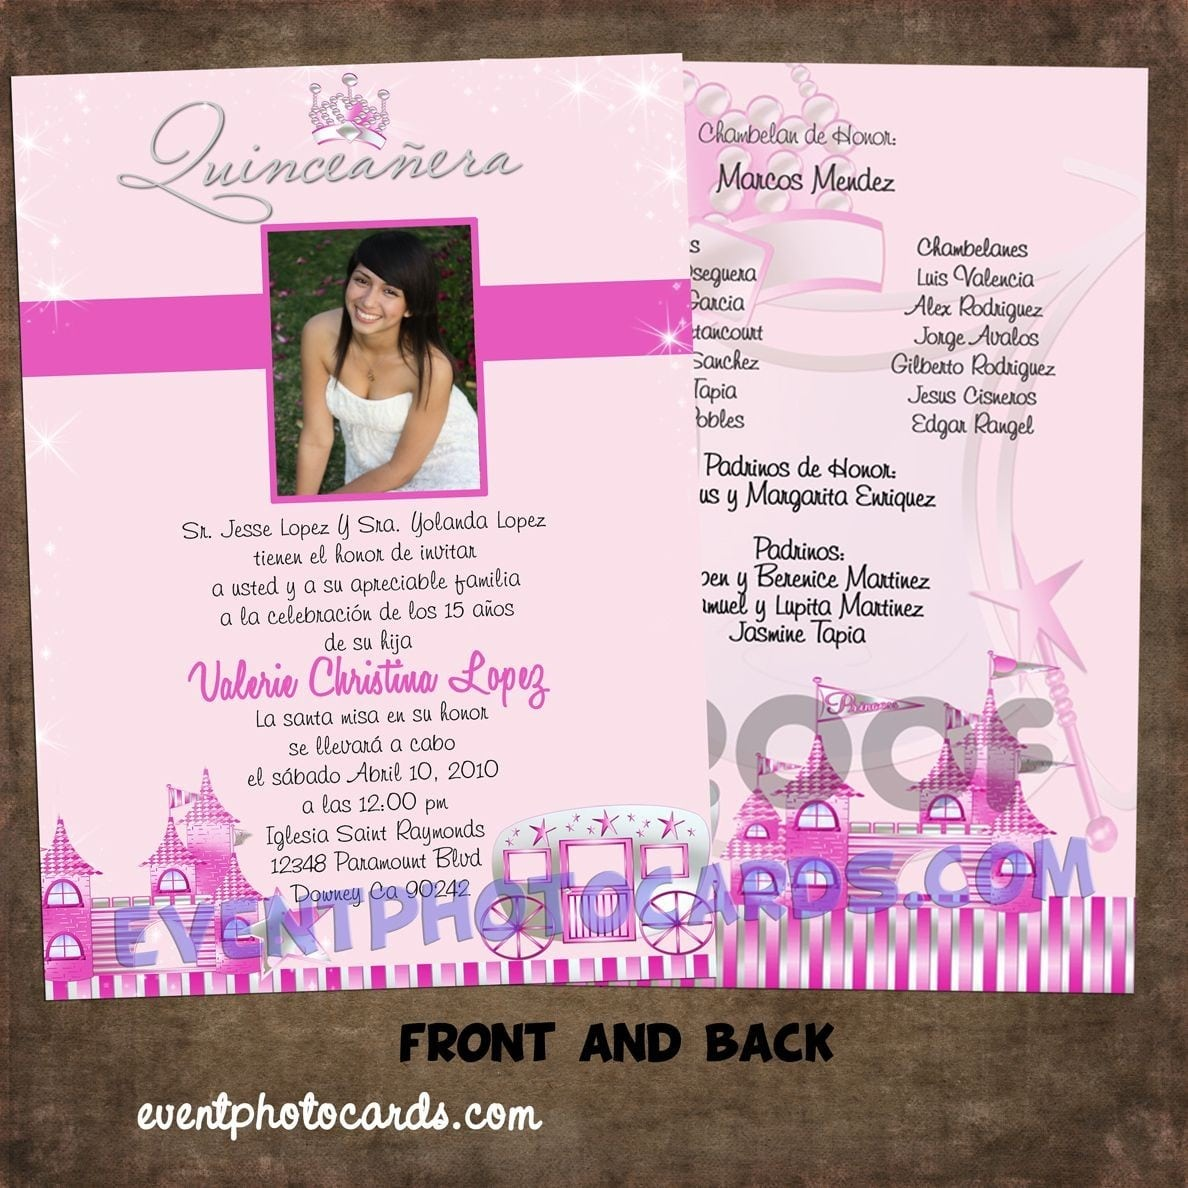 Posts related to Quinceanera Invitations Templates